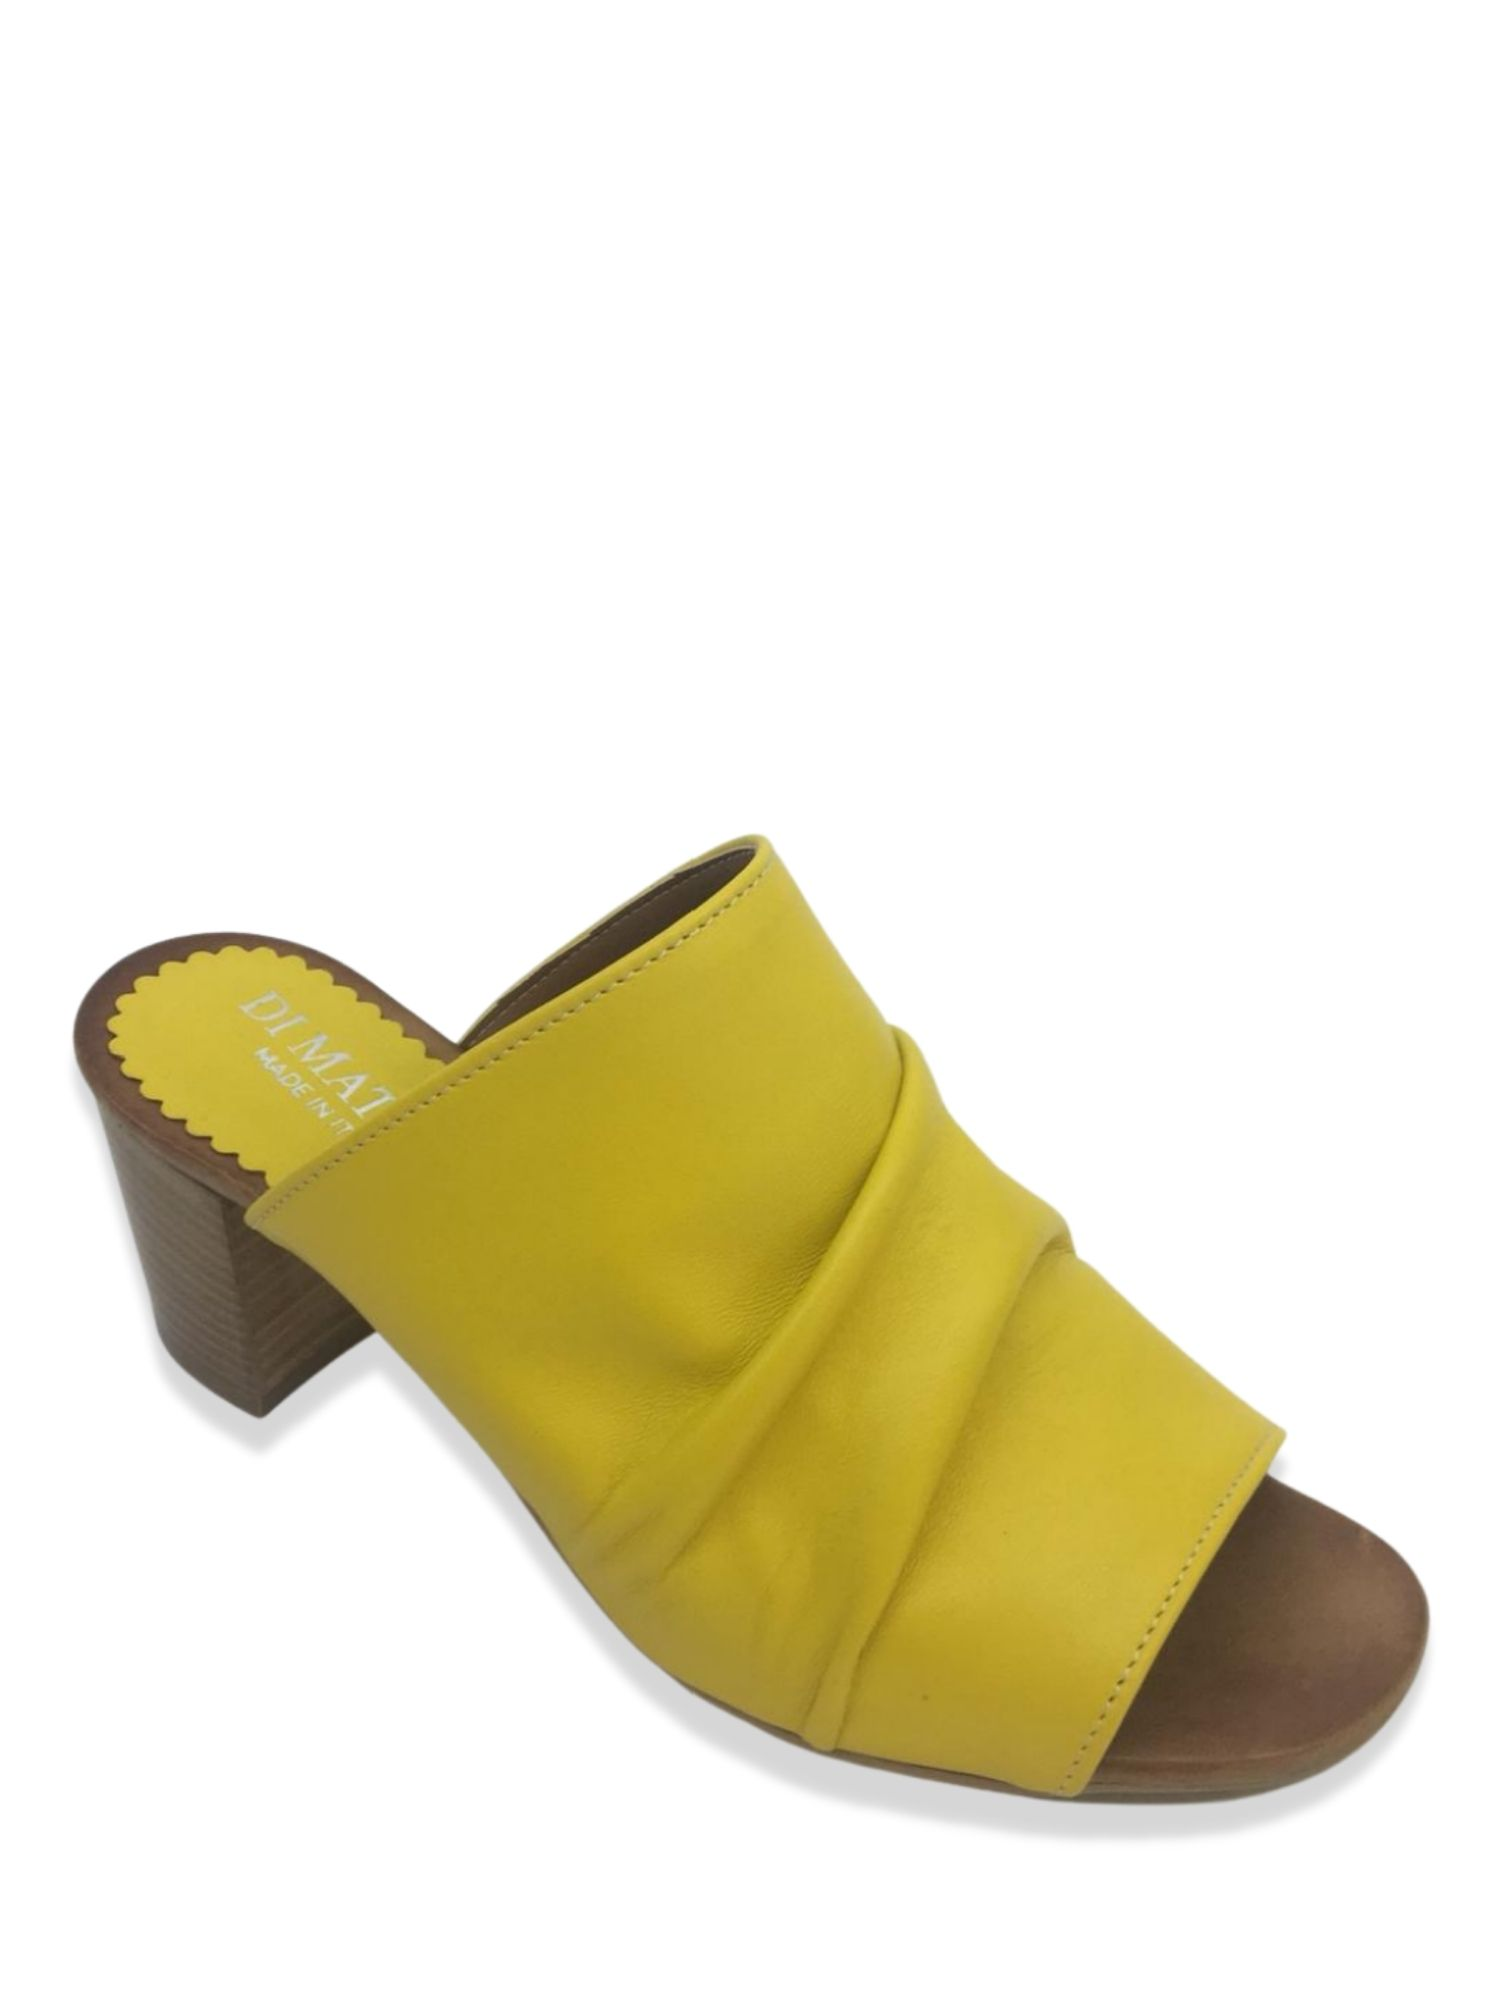 Sandalo Sabot Made in Italy 107 Giallo laterale